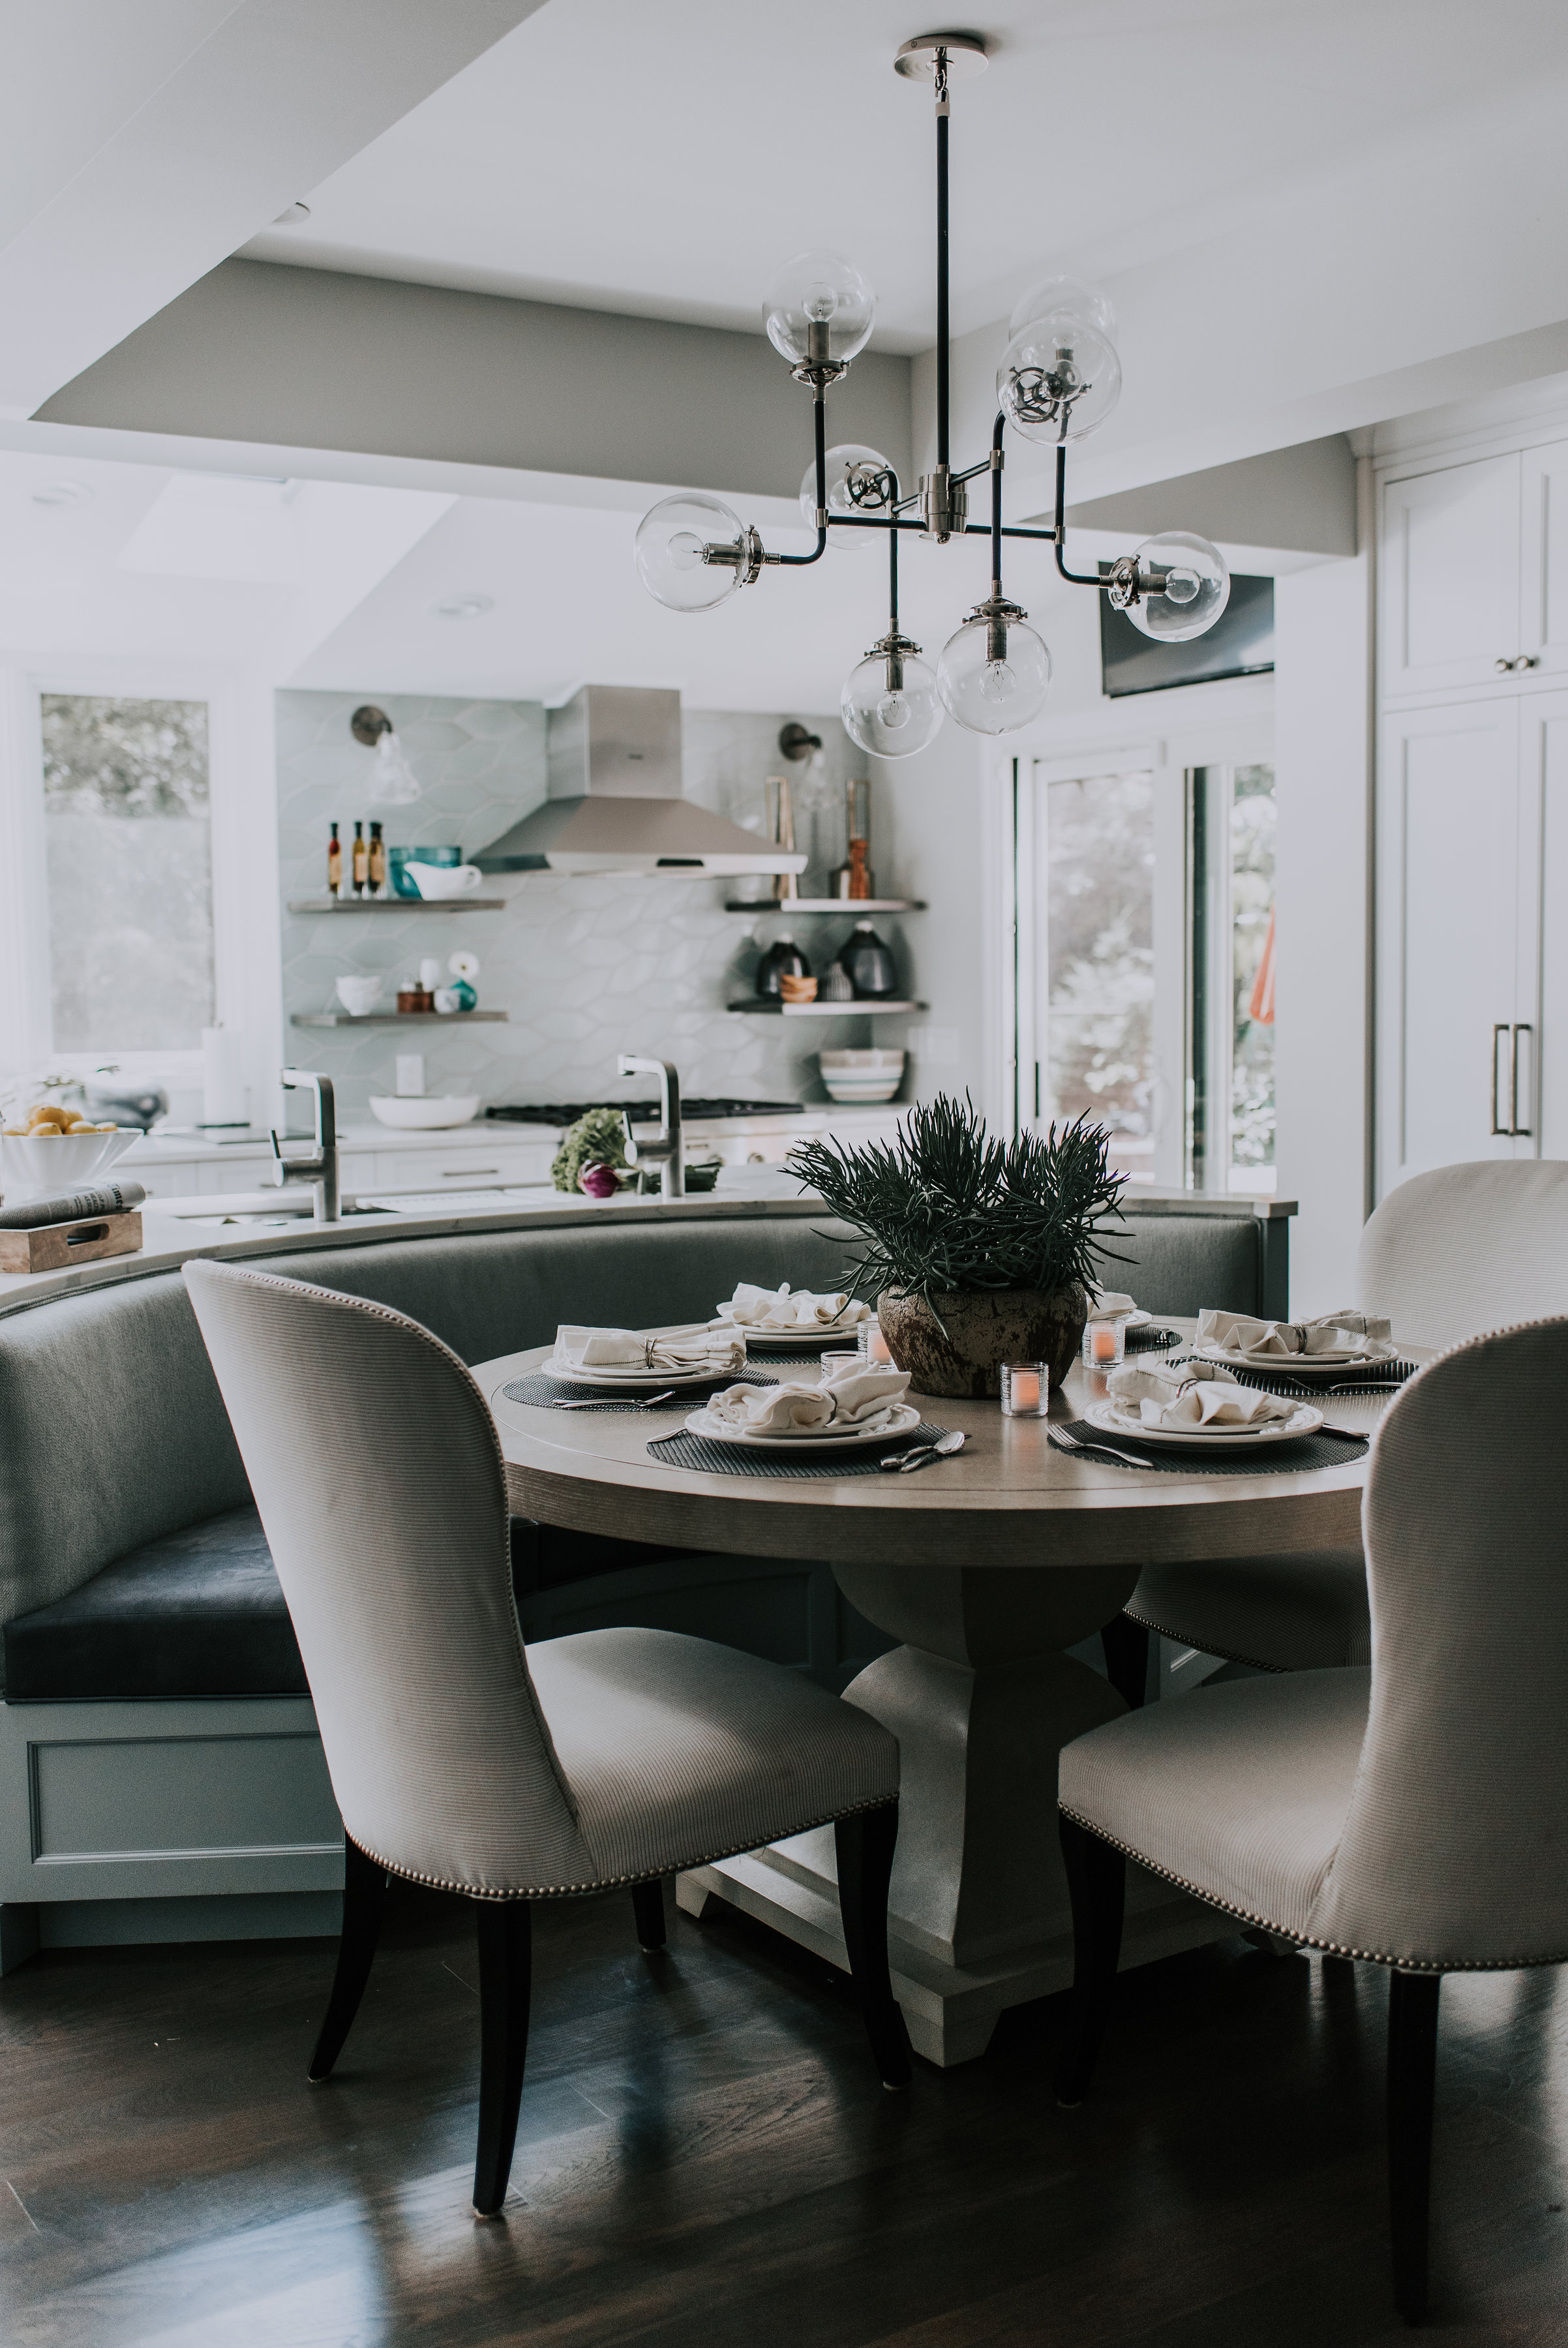 - setting the table From the beginning, this project was the collaborative effort of owner, designer and contractor. For a family that loves to cook and entertain—they needed a space that could host and feed a large gathering, as well as manage their bustling family life.